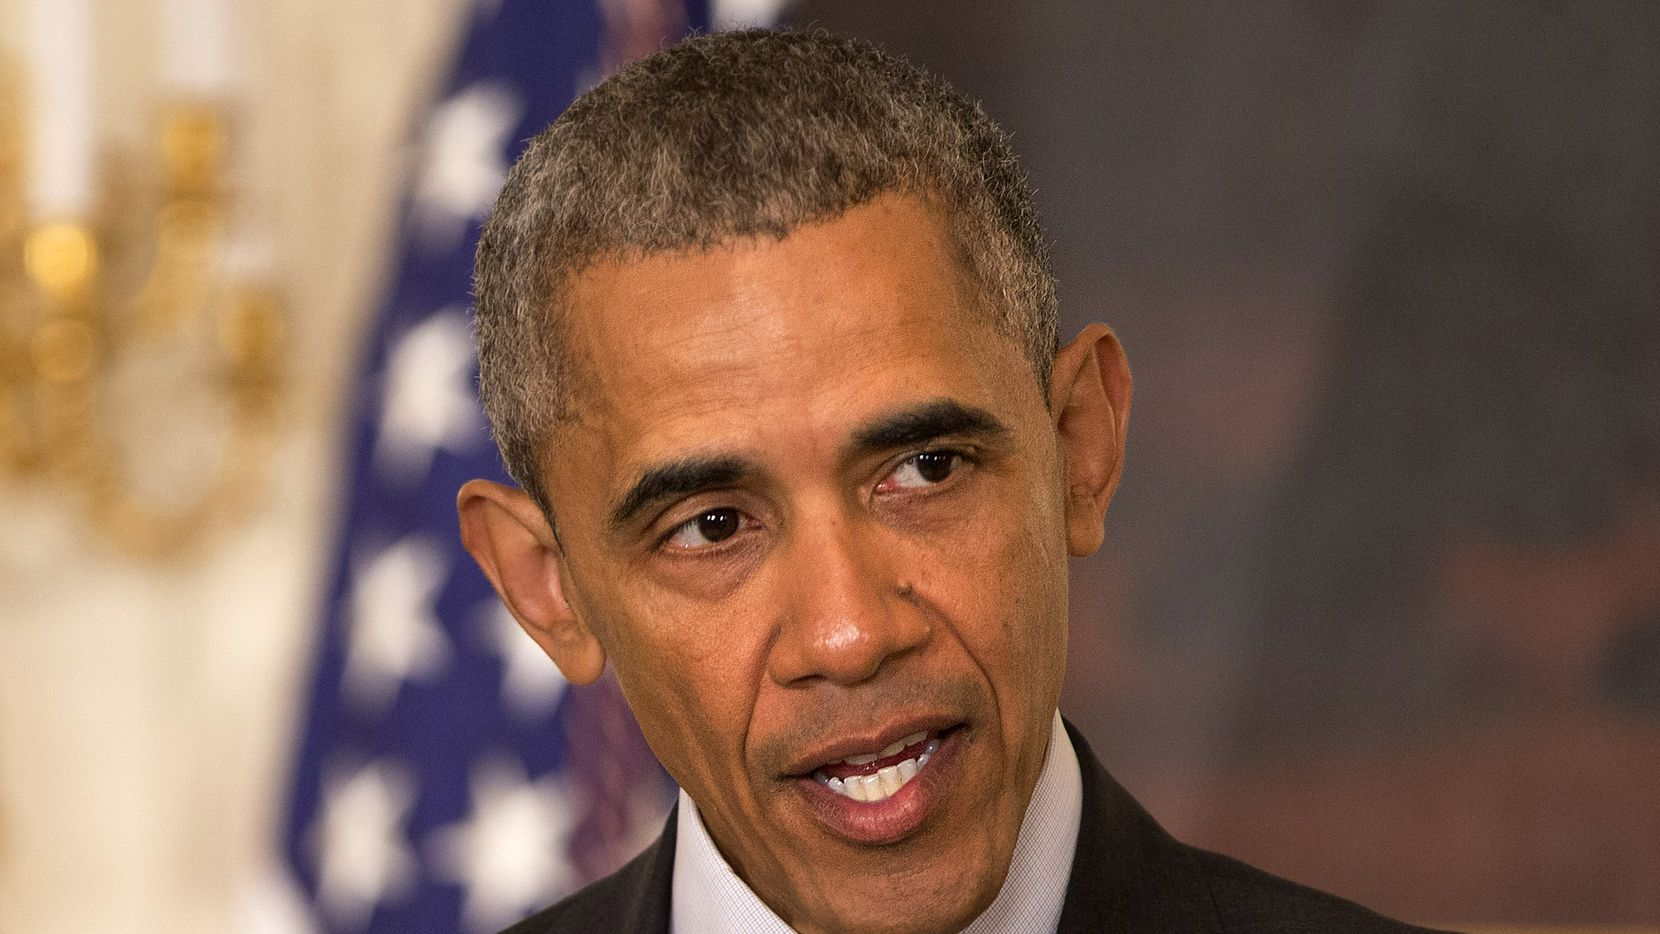 President Barack Obama has now commuted 248 sentences during his time in office. (Jacquelyn Martin/The Associated Press)